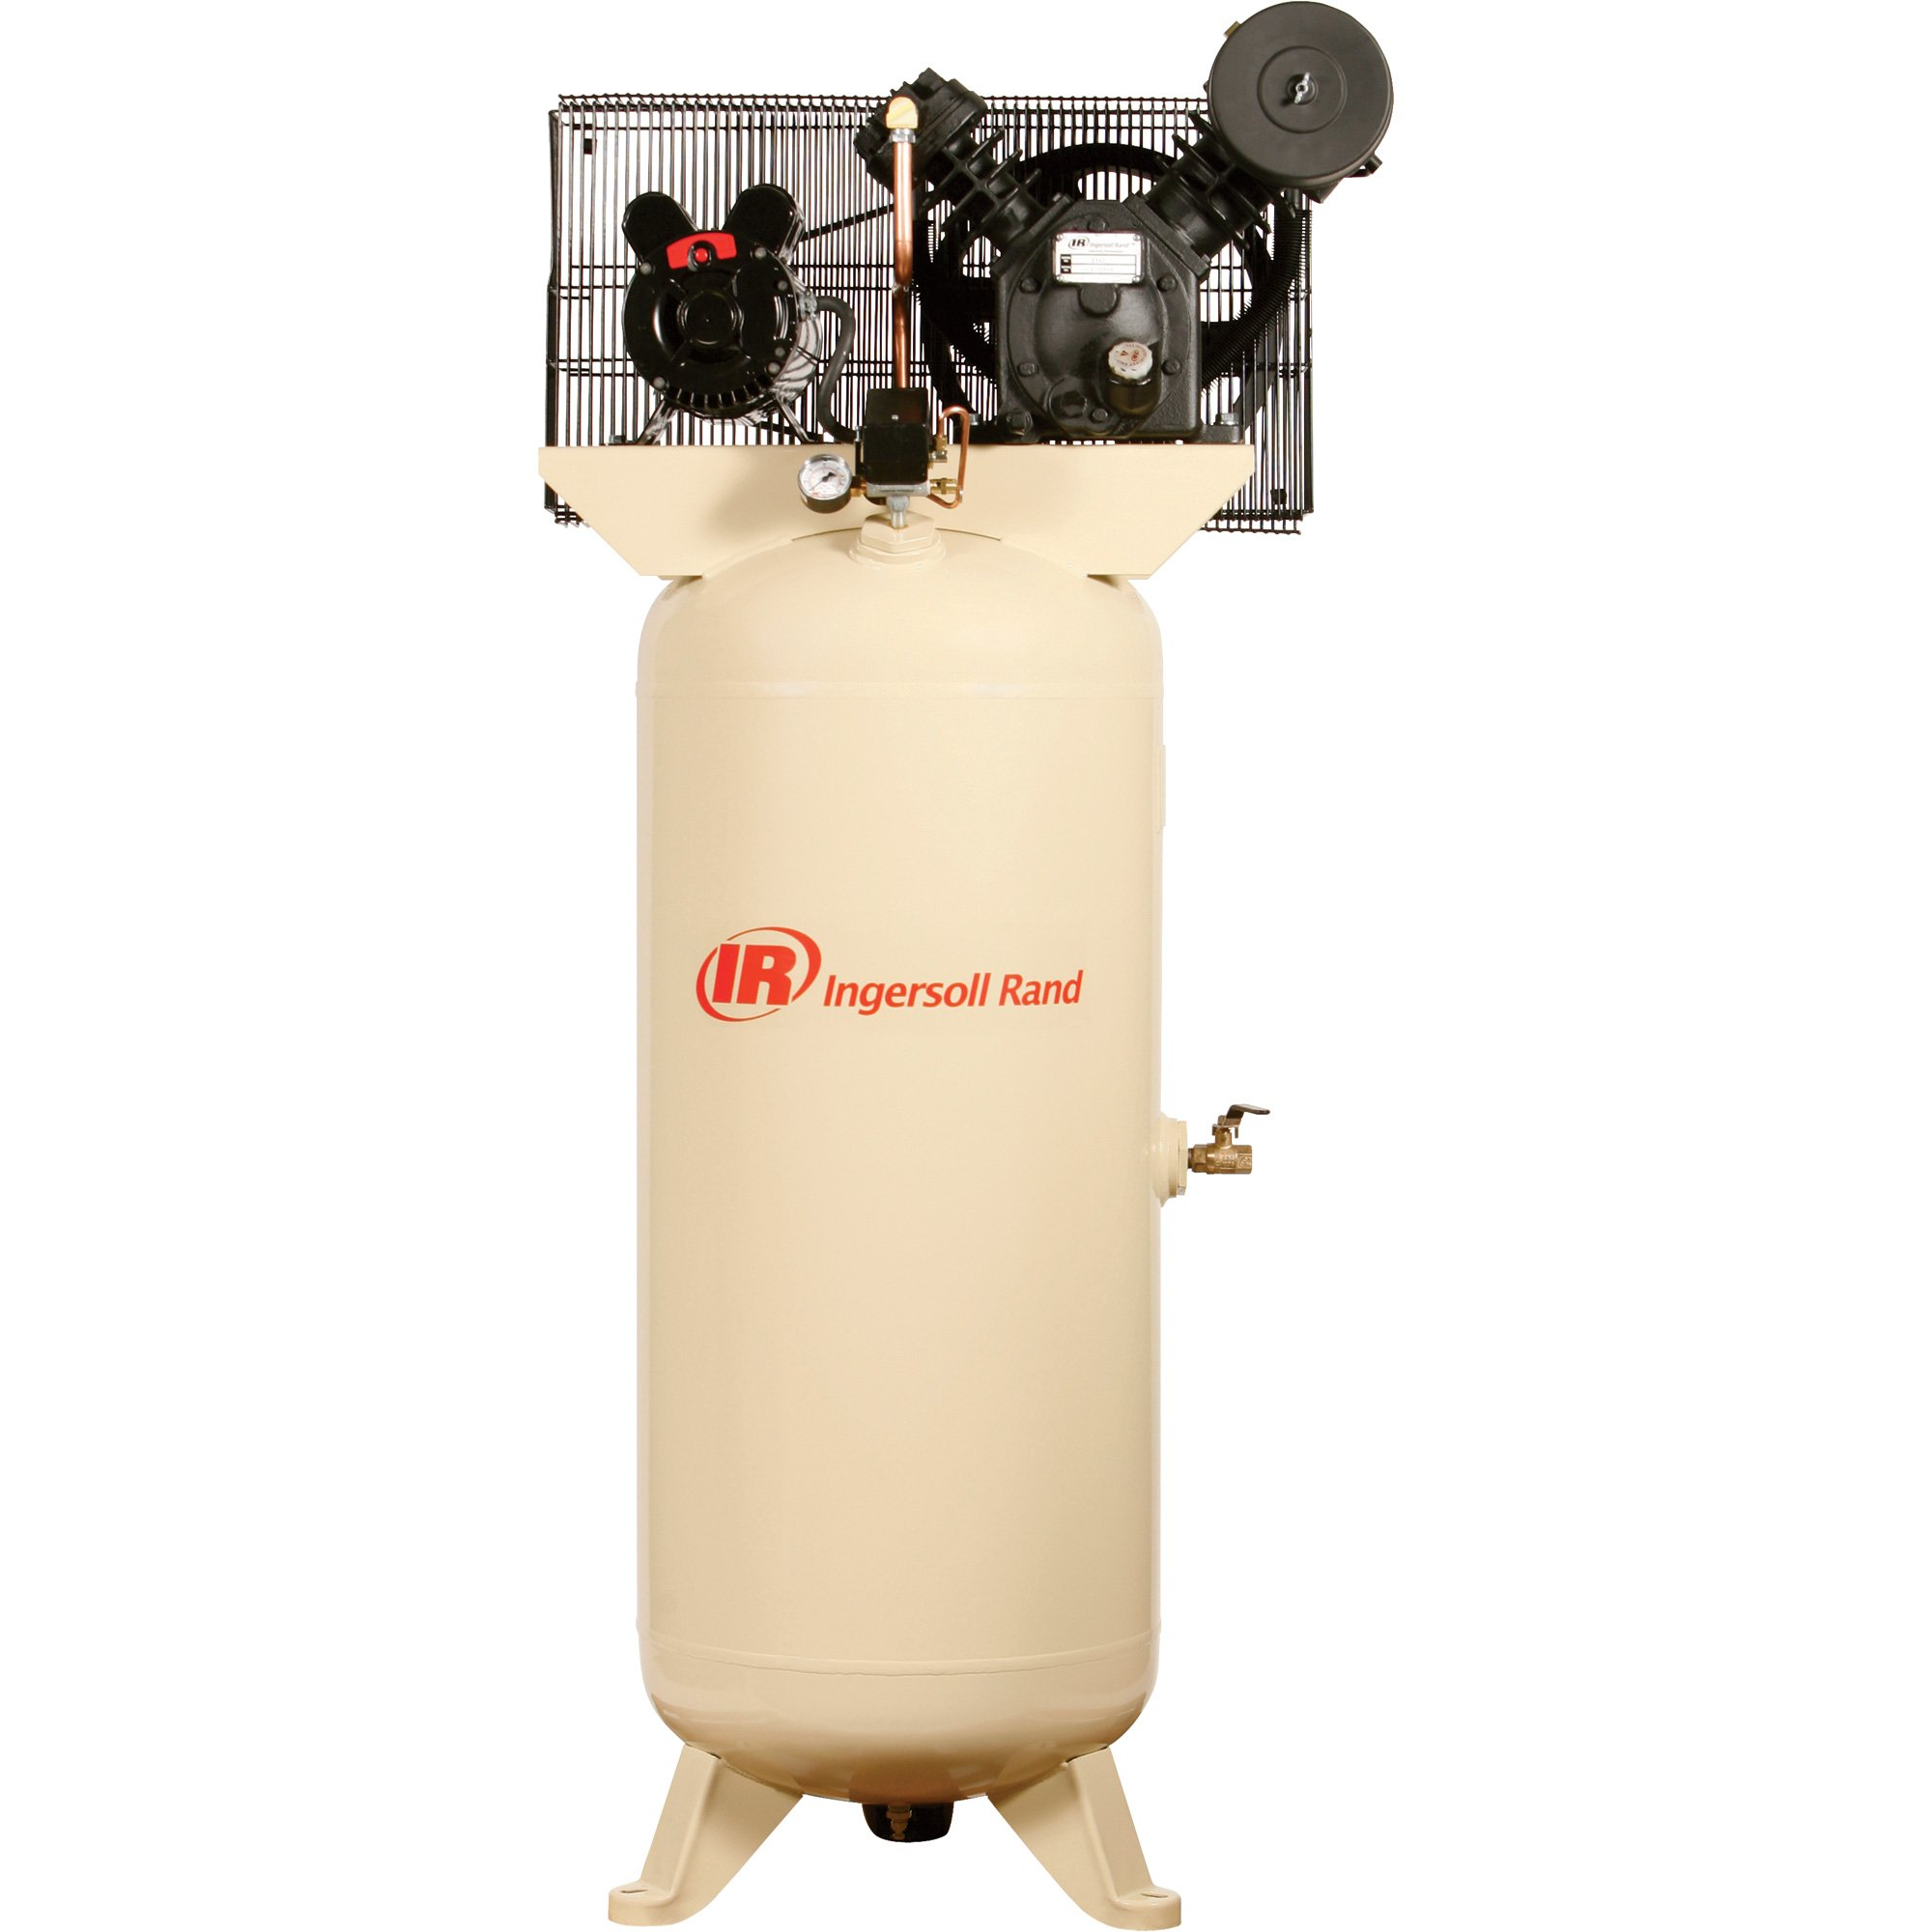 hight resolution of 5hp 2340n5 ingersoll rand air compressor